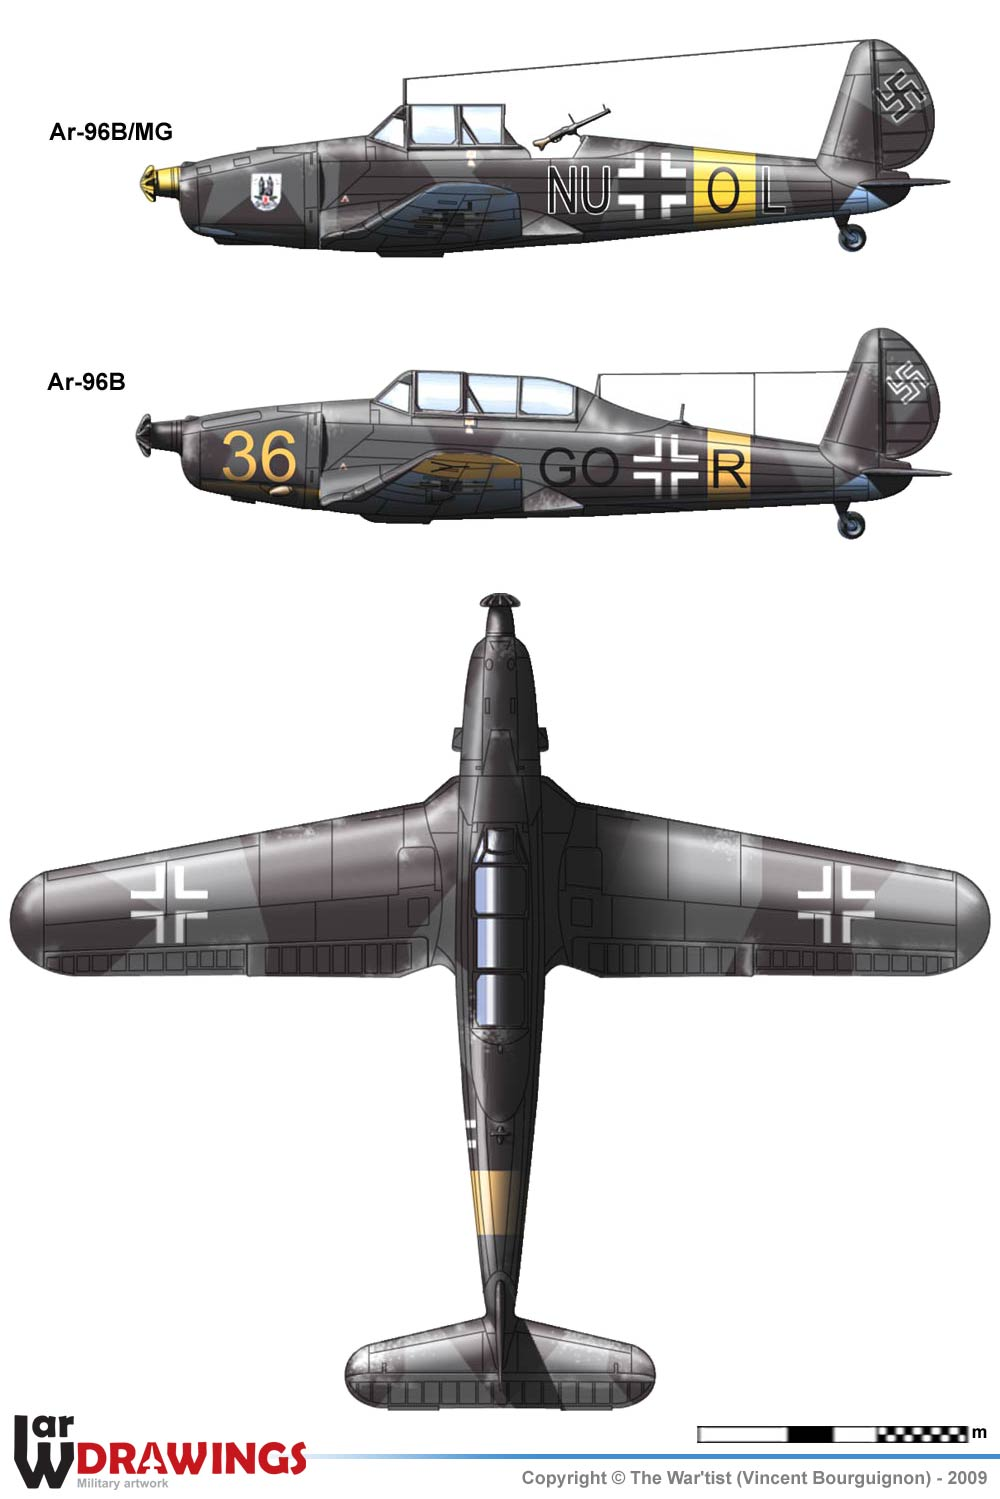 Airplanes axis germany 08 others ar 96 ar 96 htm up dated